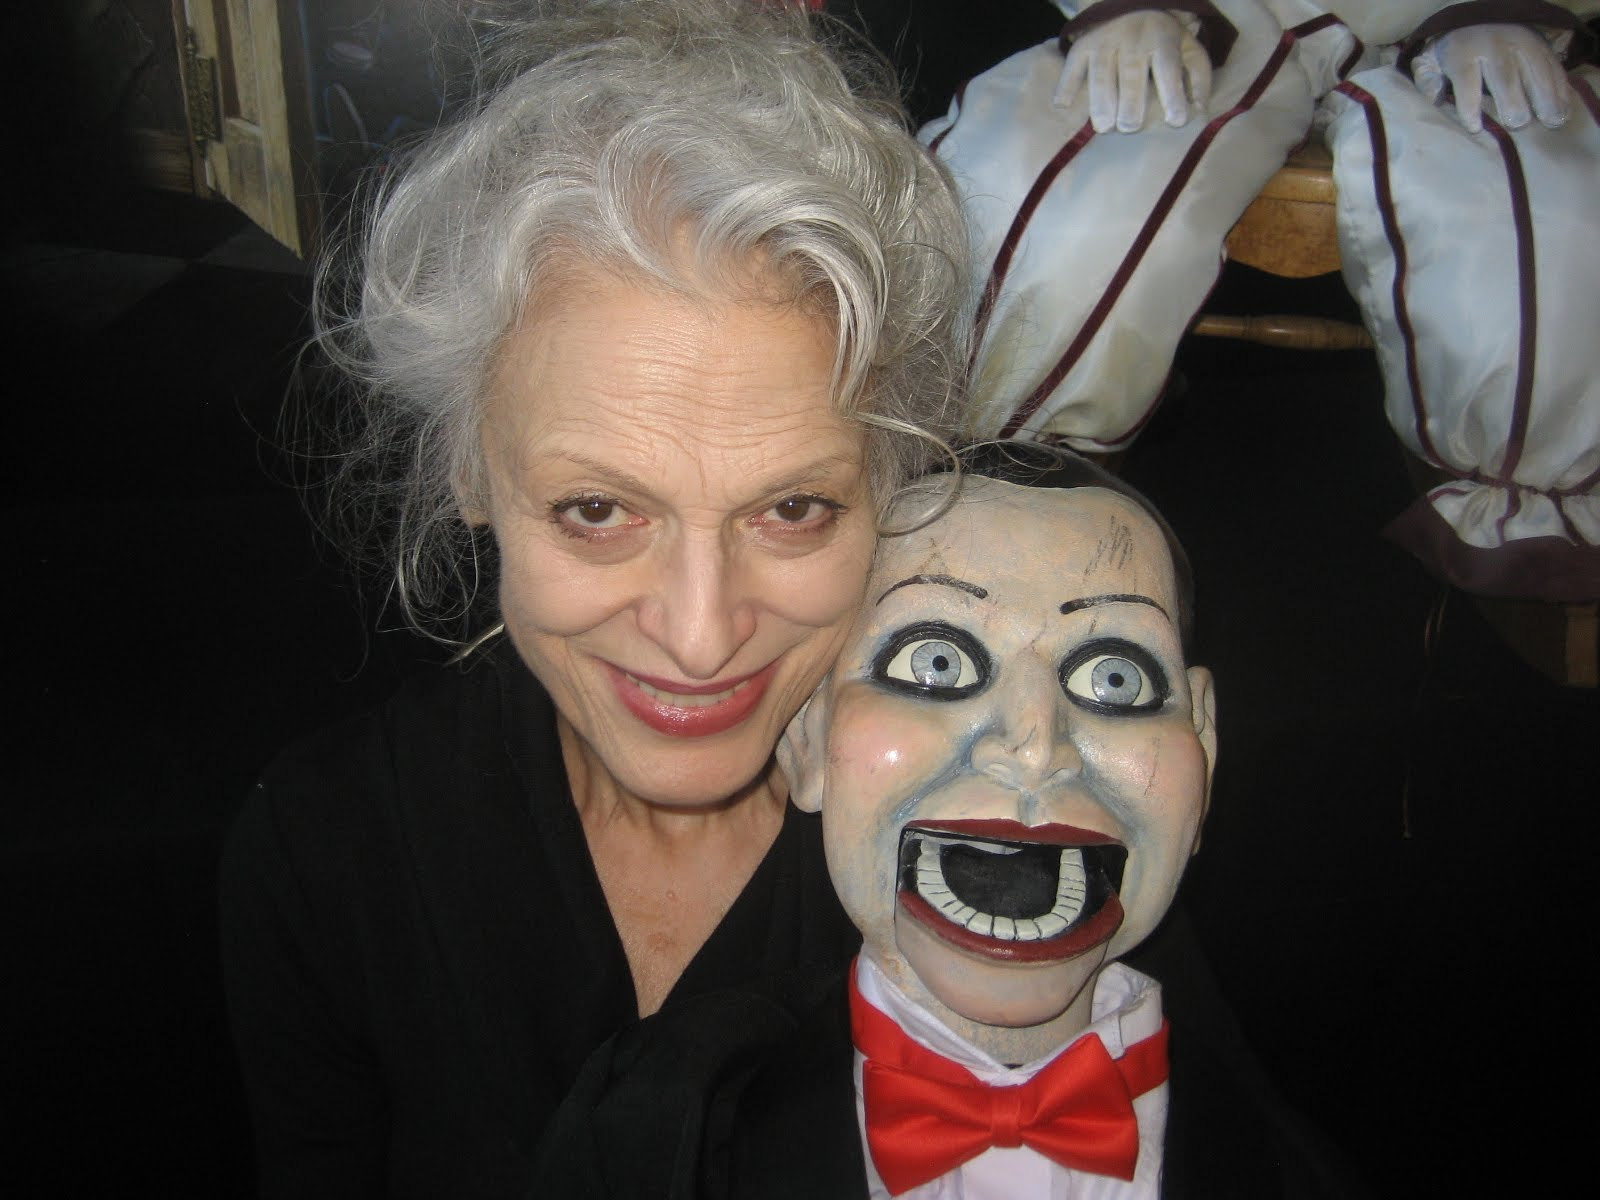 Judith Roberts (actress) Judith Roberts (actress) new foto